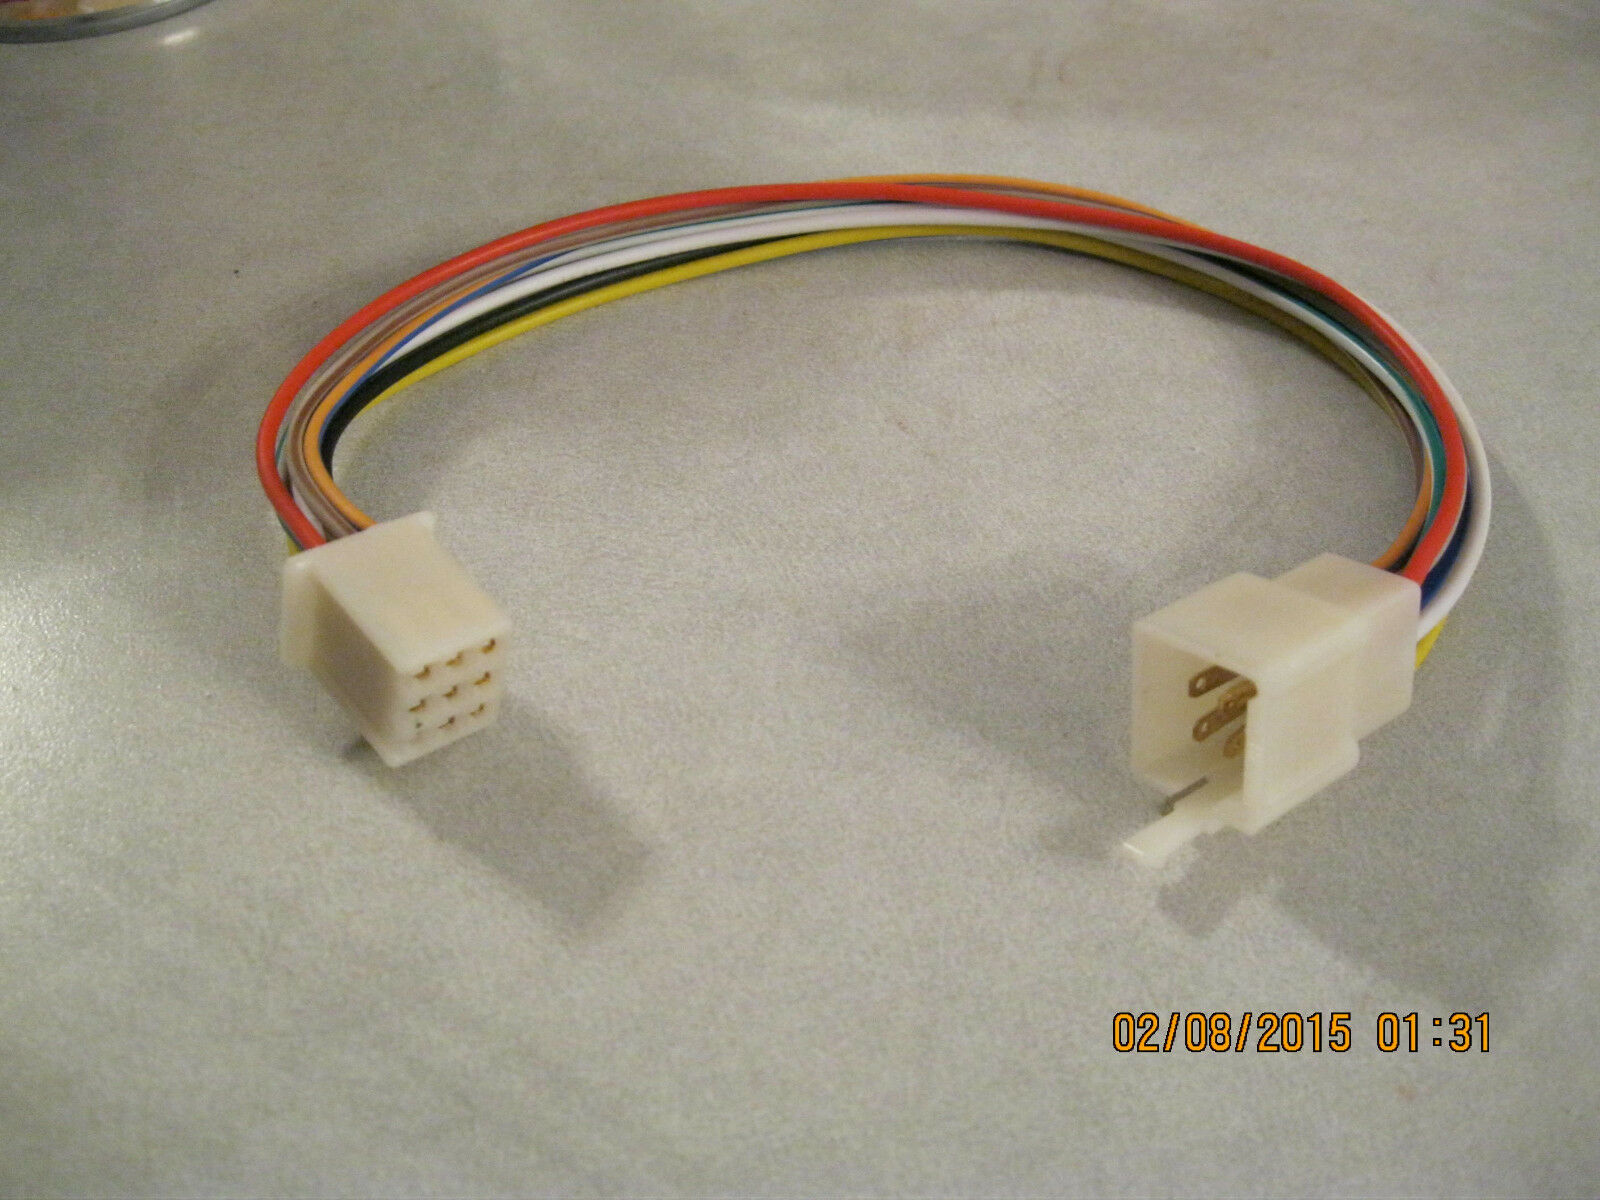 kubota rtv 9 pin wire harness tractor plug female male cd radio fisher plow light wiring diagram 1 of 3free shipping